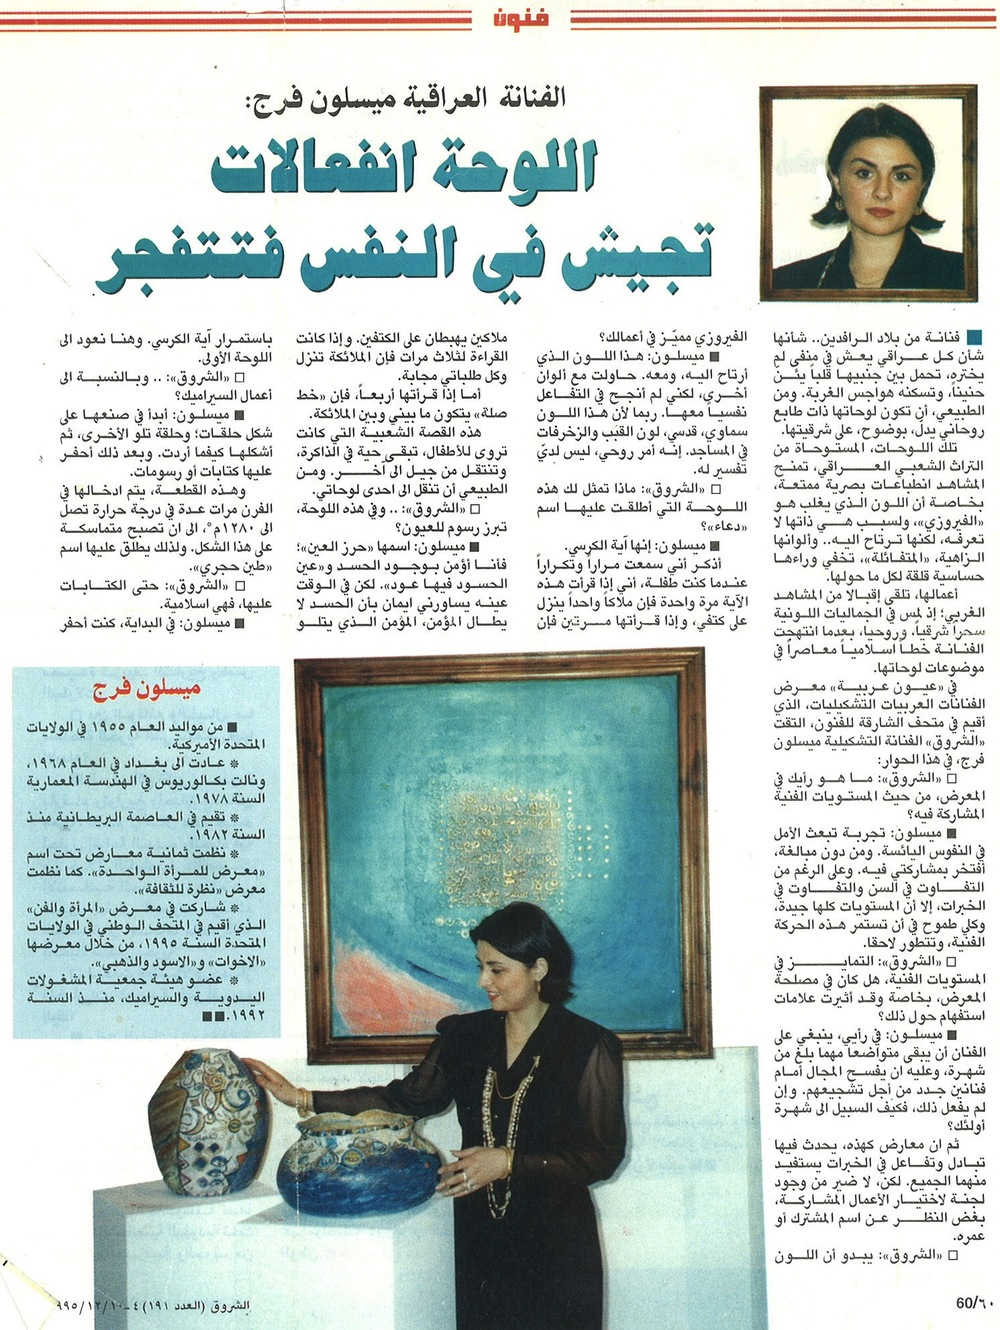 Uyoun Arabiya Arabian Eyes Exhibition of Arab women artists at Beit al-Sirkal Sharjah UAE 1995